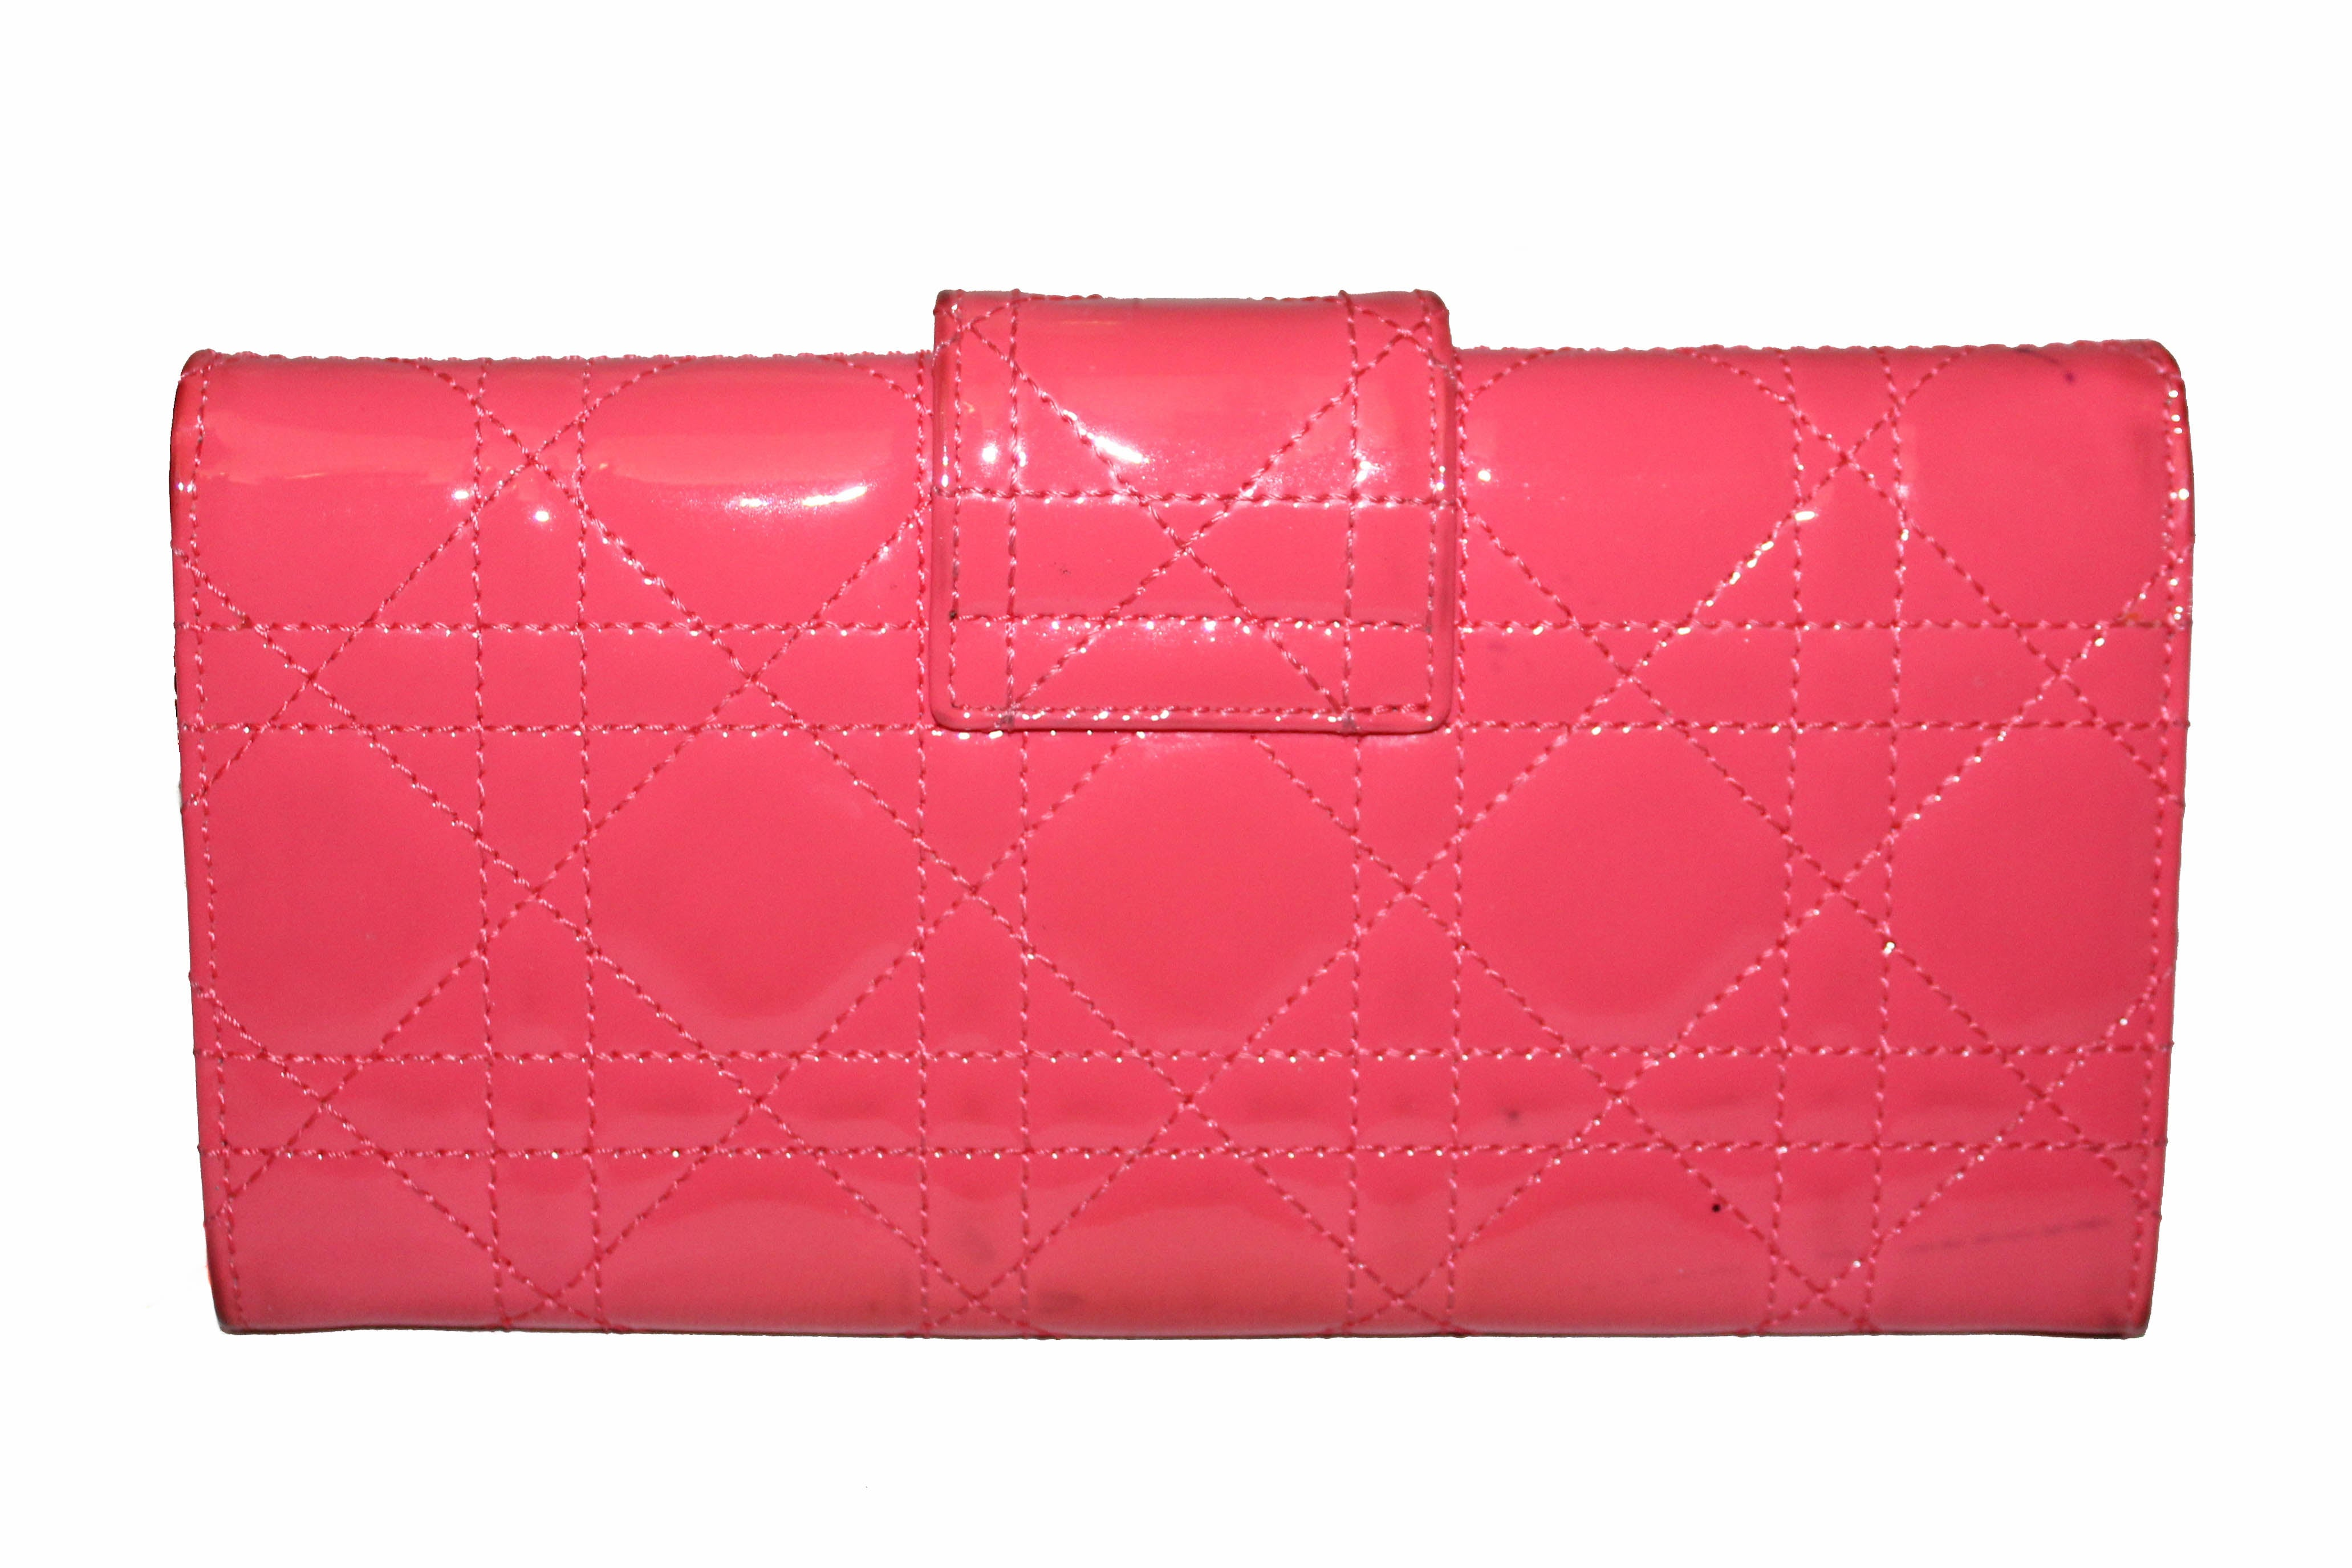 Authentic Christian Dior Coral Red Patent Cannage Miss Dior Rendezvous Wallet